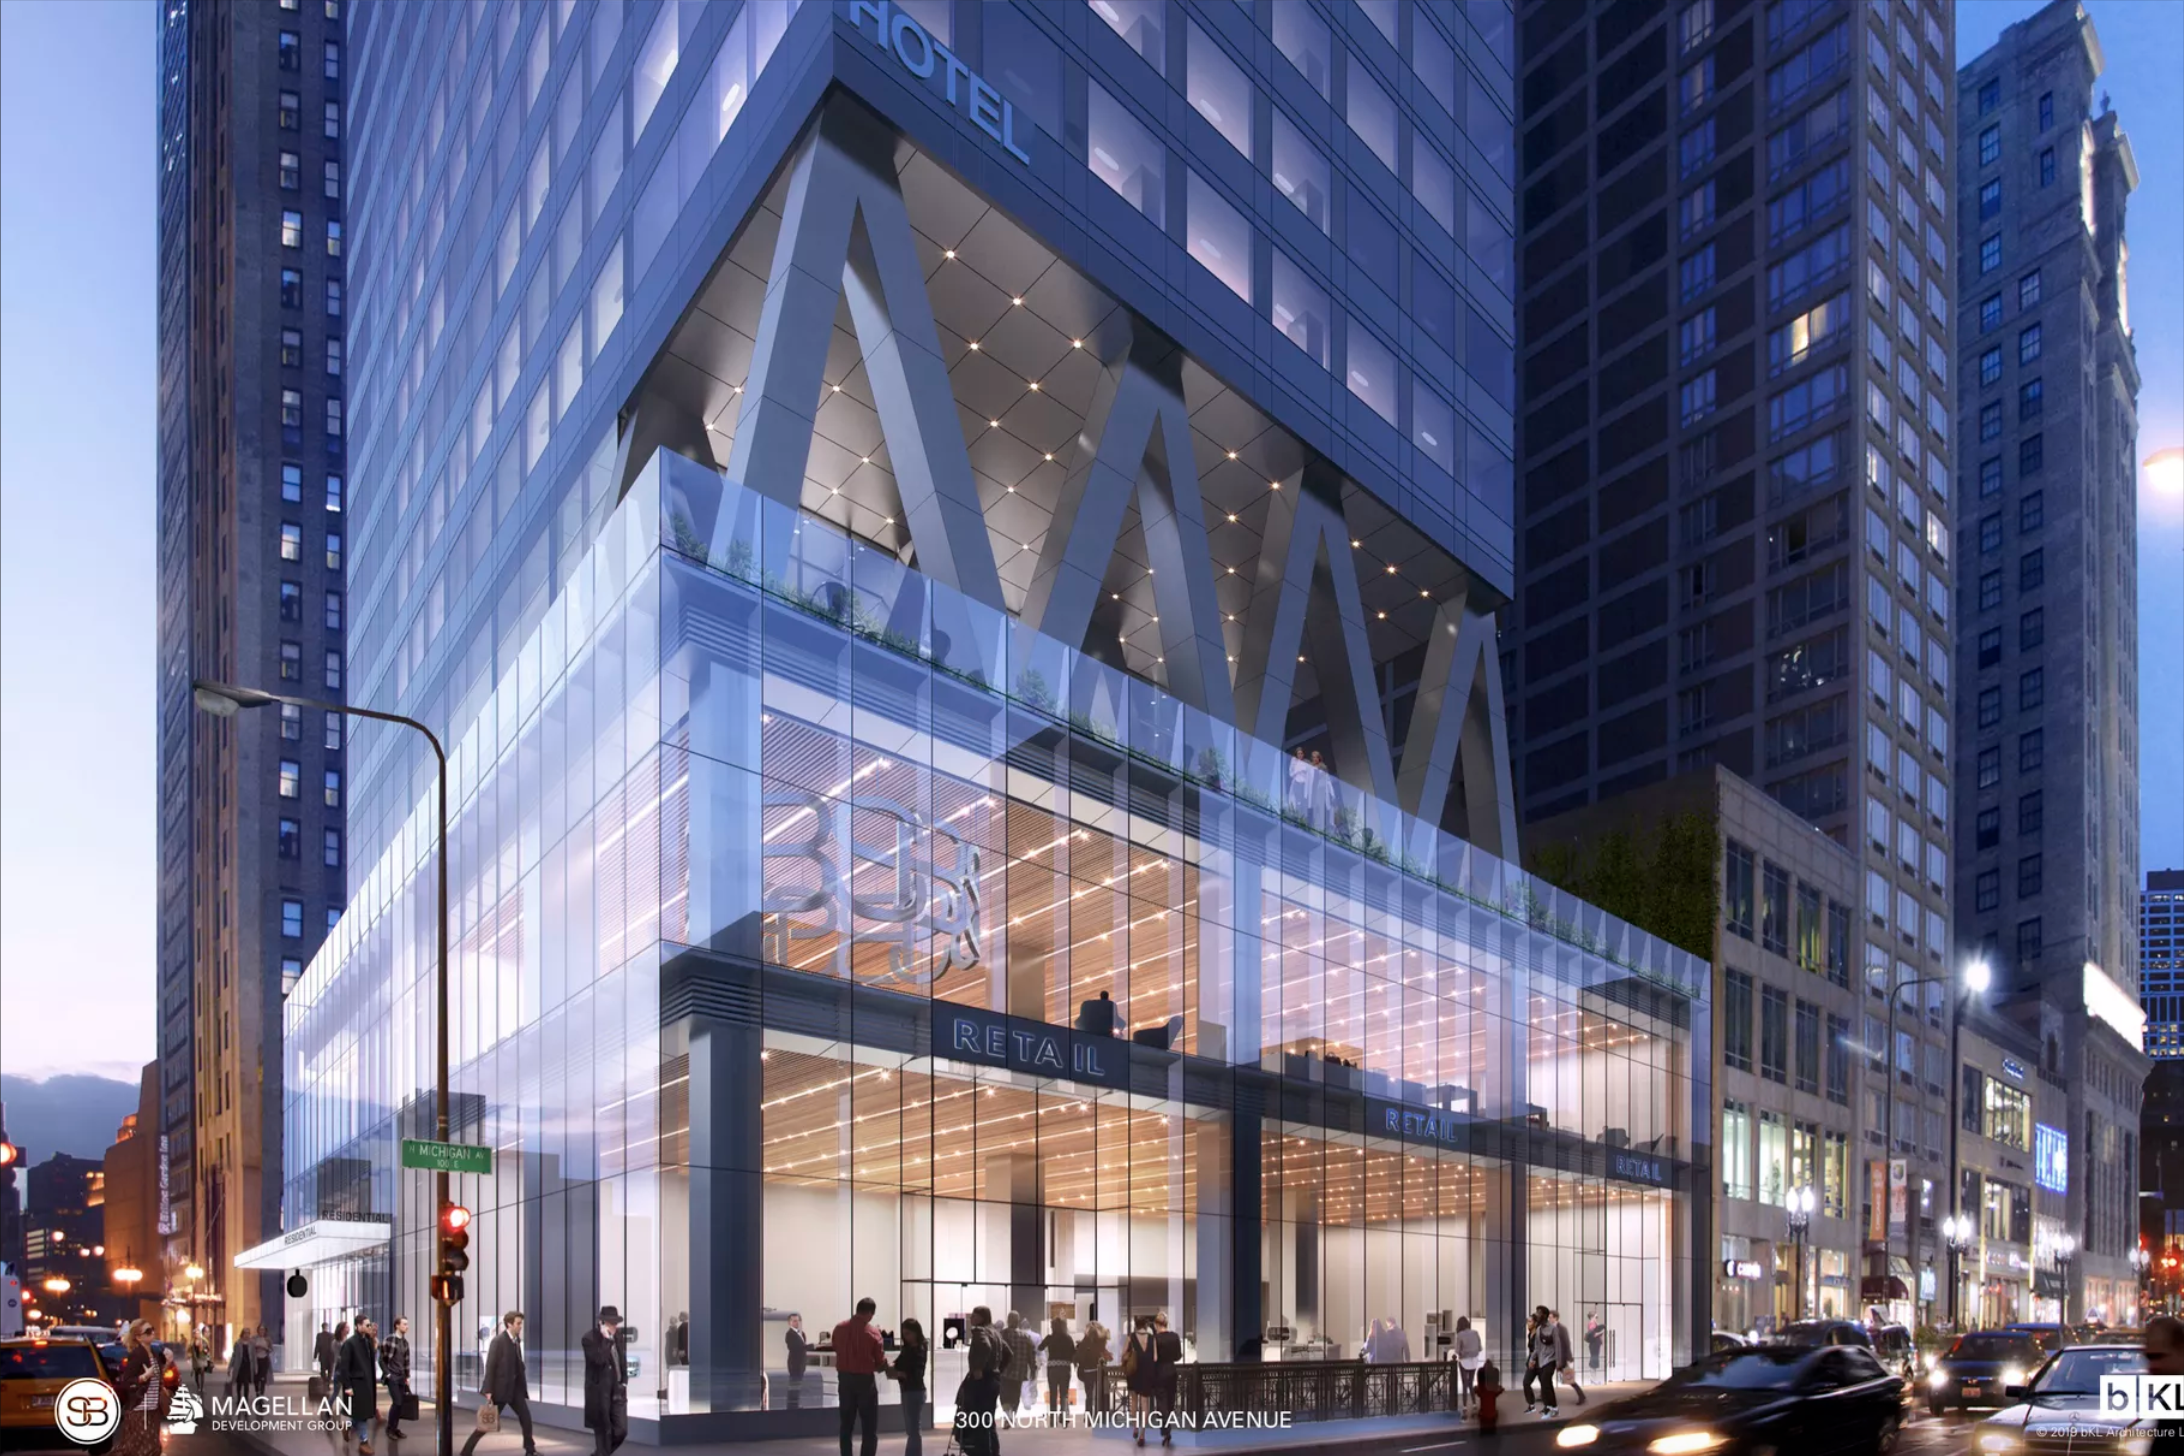 A glowing glass lobby and retail space on a busy downtown corner. It is topped by angled columns creating an open-air mezzanine with hotel rooms above.